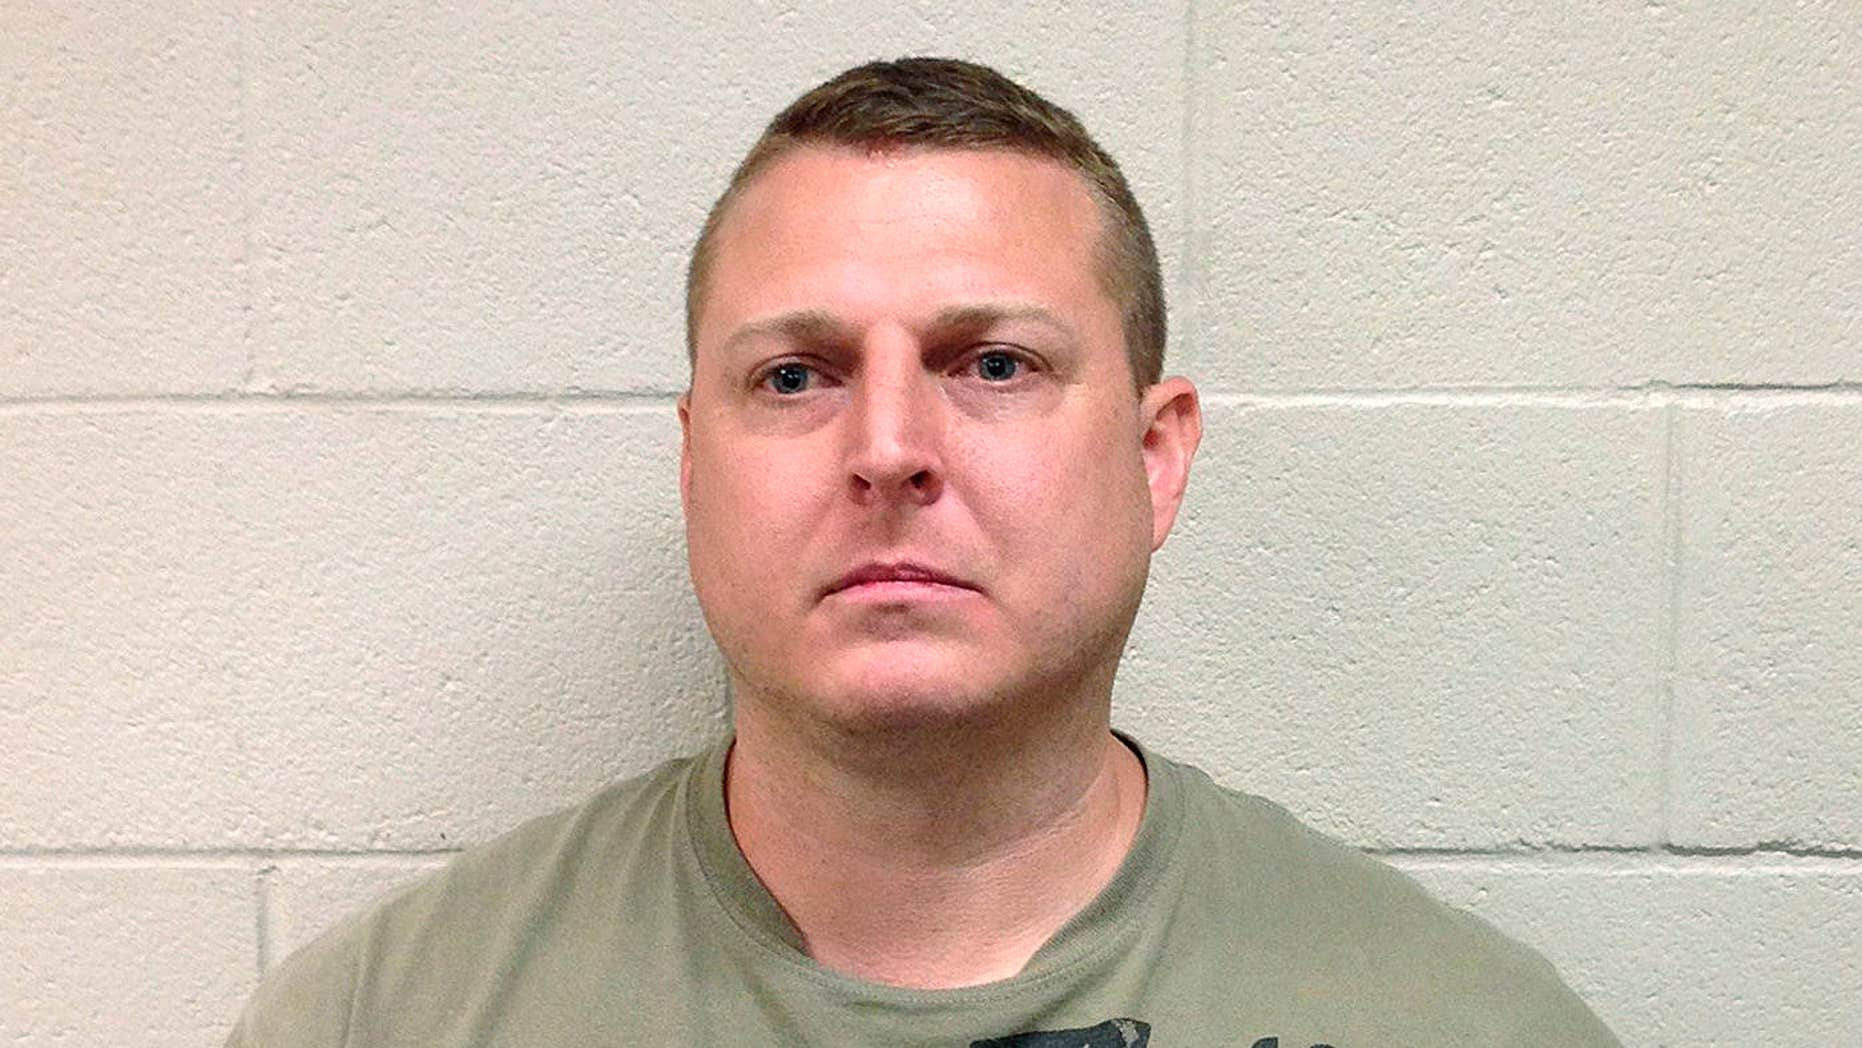 In this June 2016 photo released by the Hoke County (N.C.) Sheriff's Office, Thomas Russell Langford poses for a booking photograph.